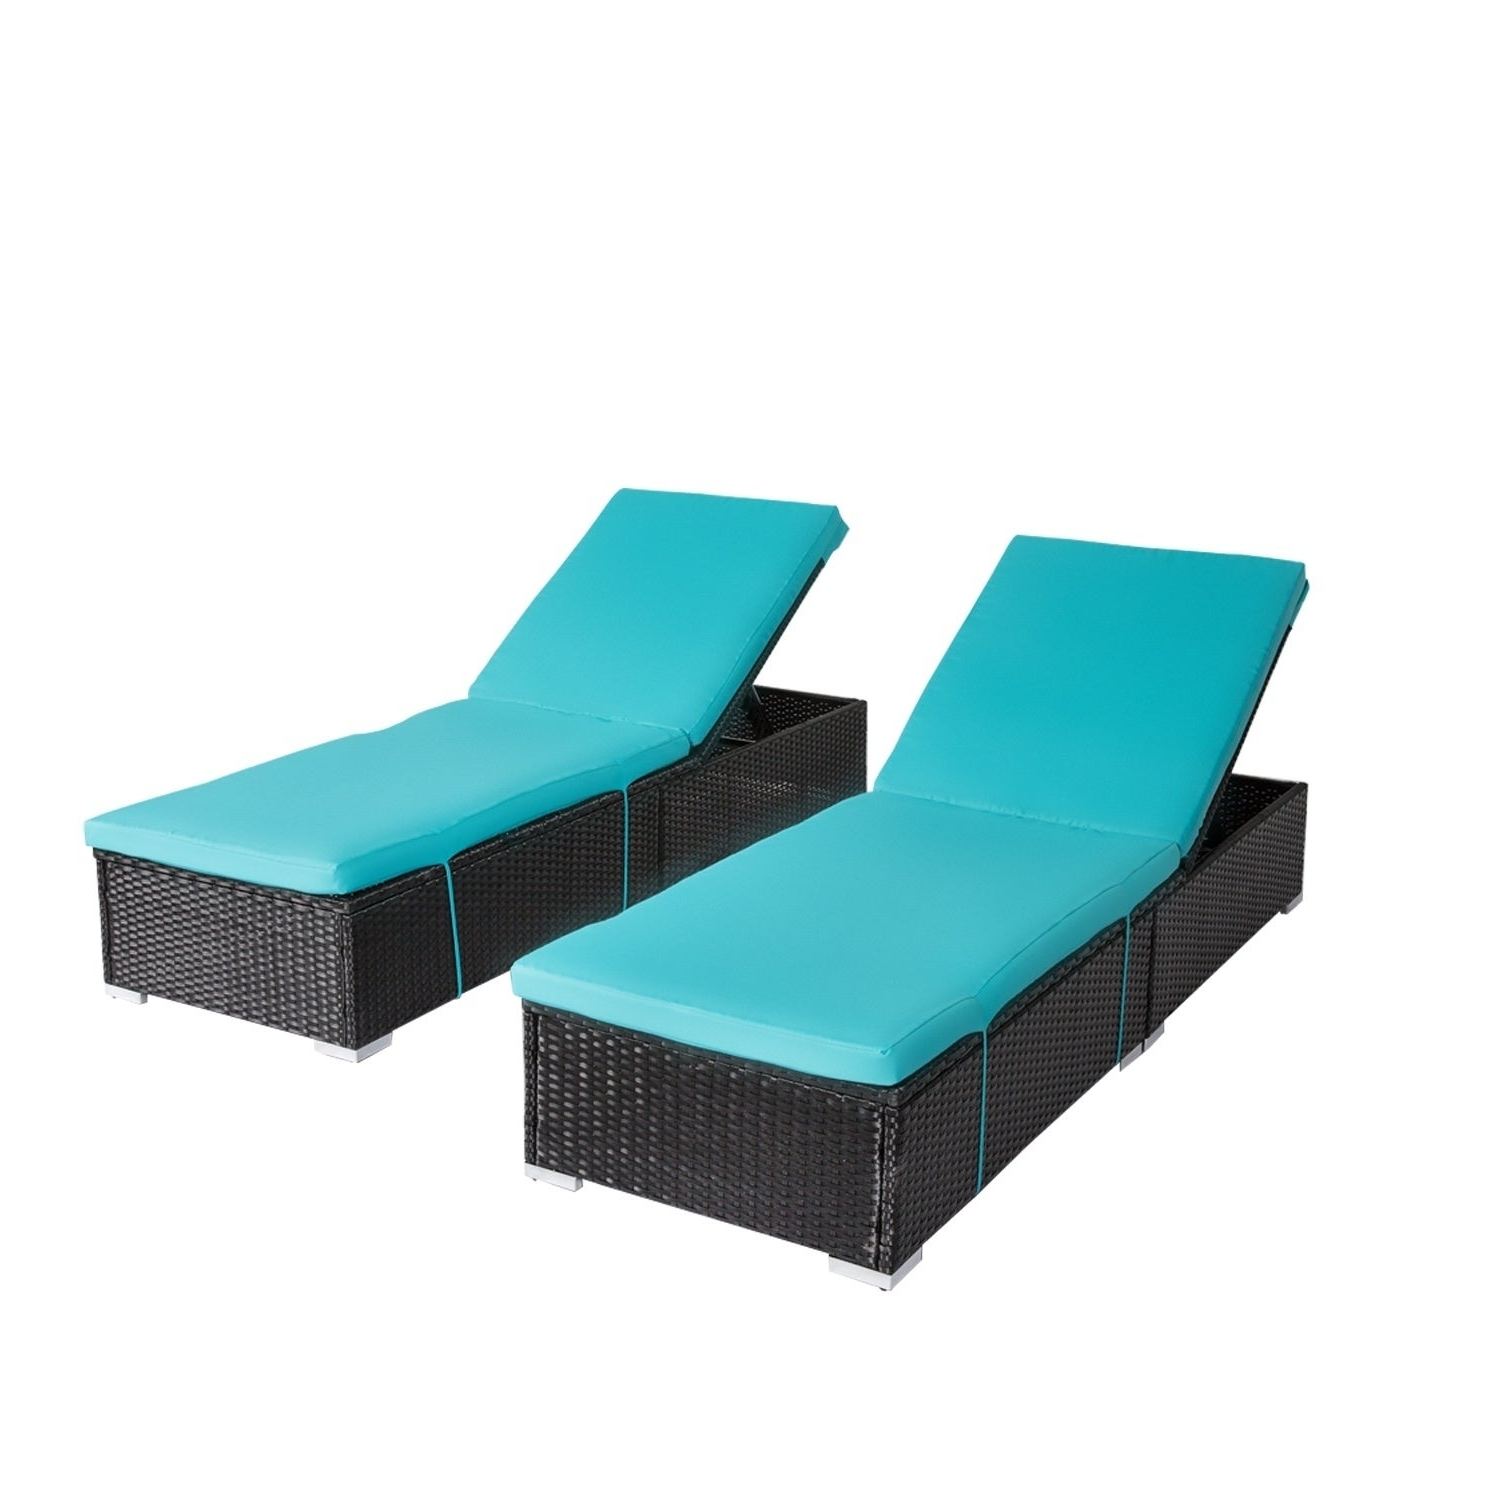 Kinbor Outdoor Adjustable Chaise Lounge Chair Pe Rattan Wicker Chaise Pool  Chairs W/cushions Pertaining To Famous All Weather Rattan Wicker Chaise Lounges (View 17 of 25)